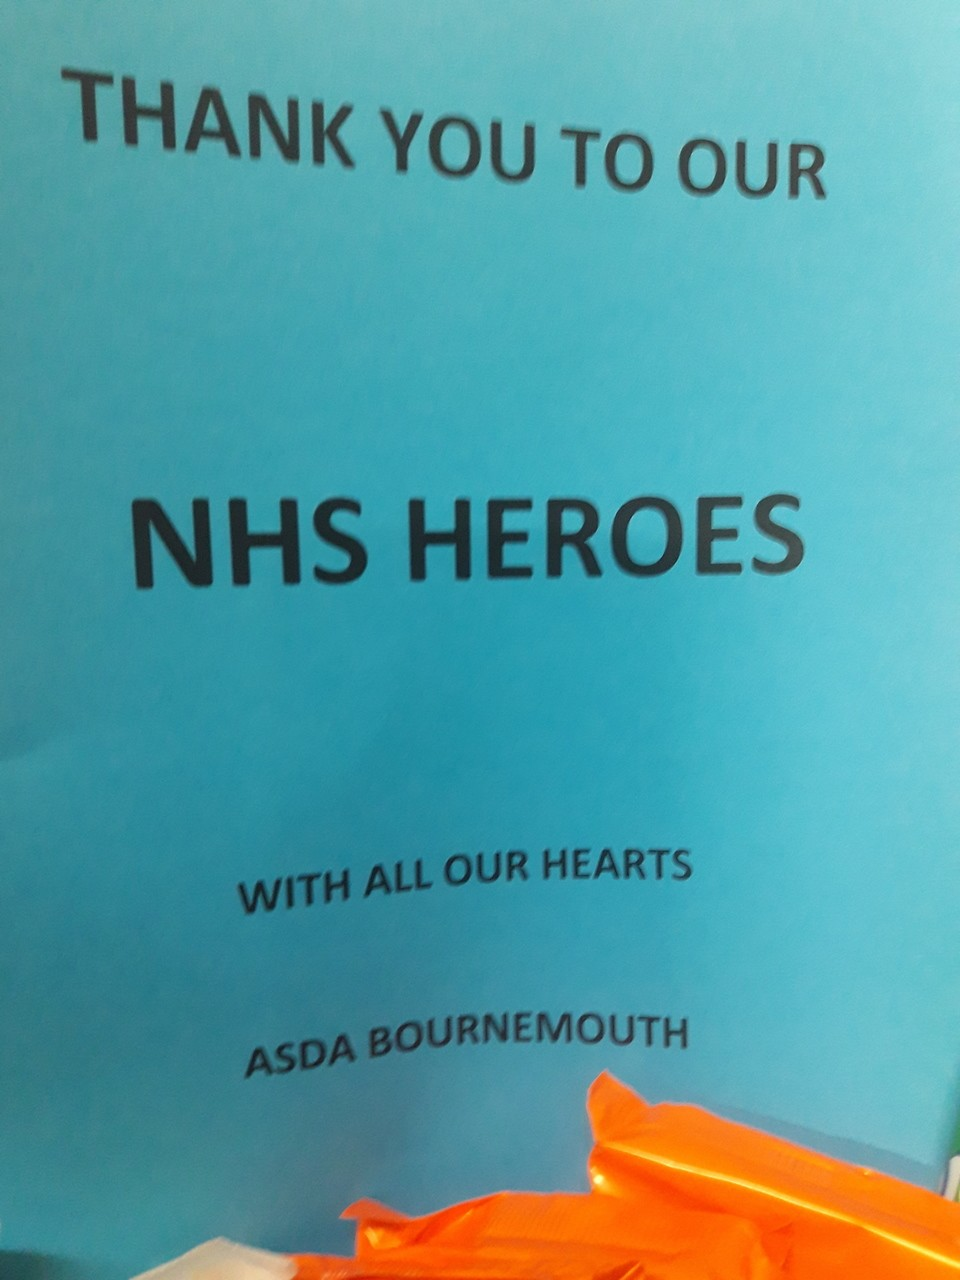 BOURNEMOUTH PRIDE and NHS 72nd BIRTHDAY  | Asda Bournemouth